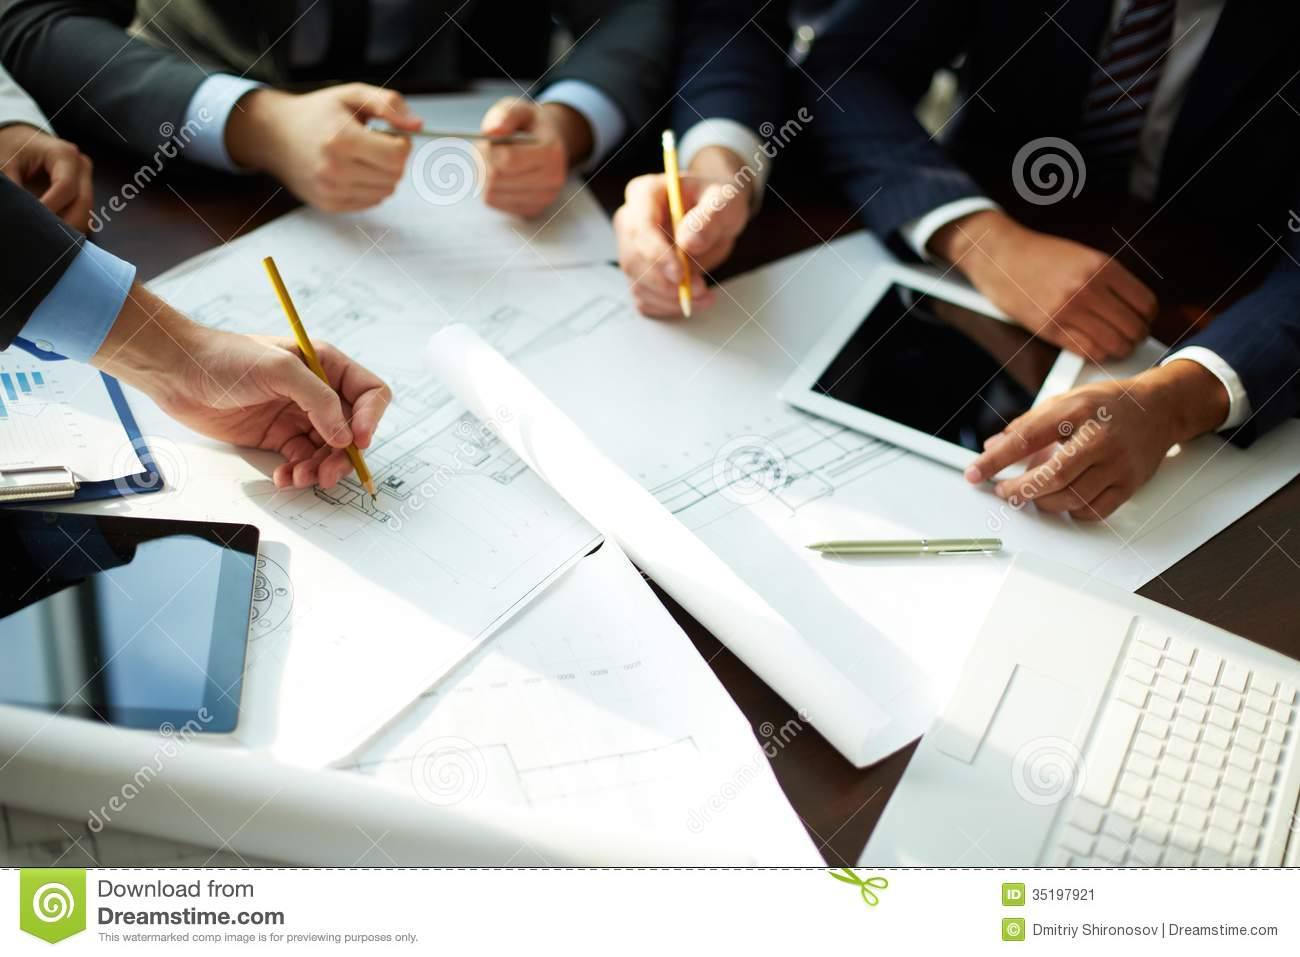 producing document for dispersed team